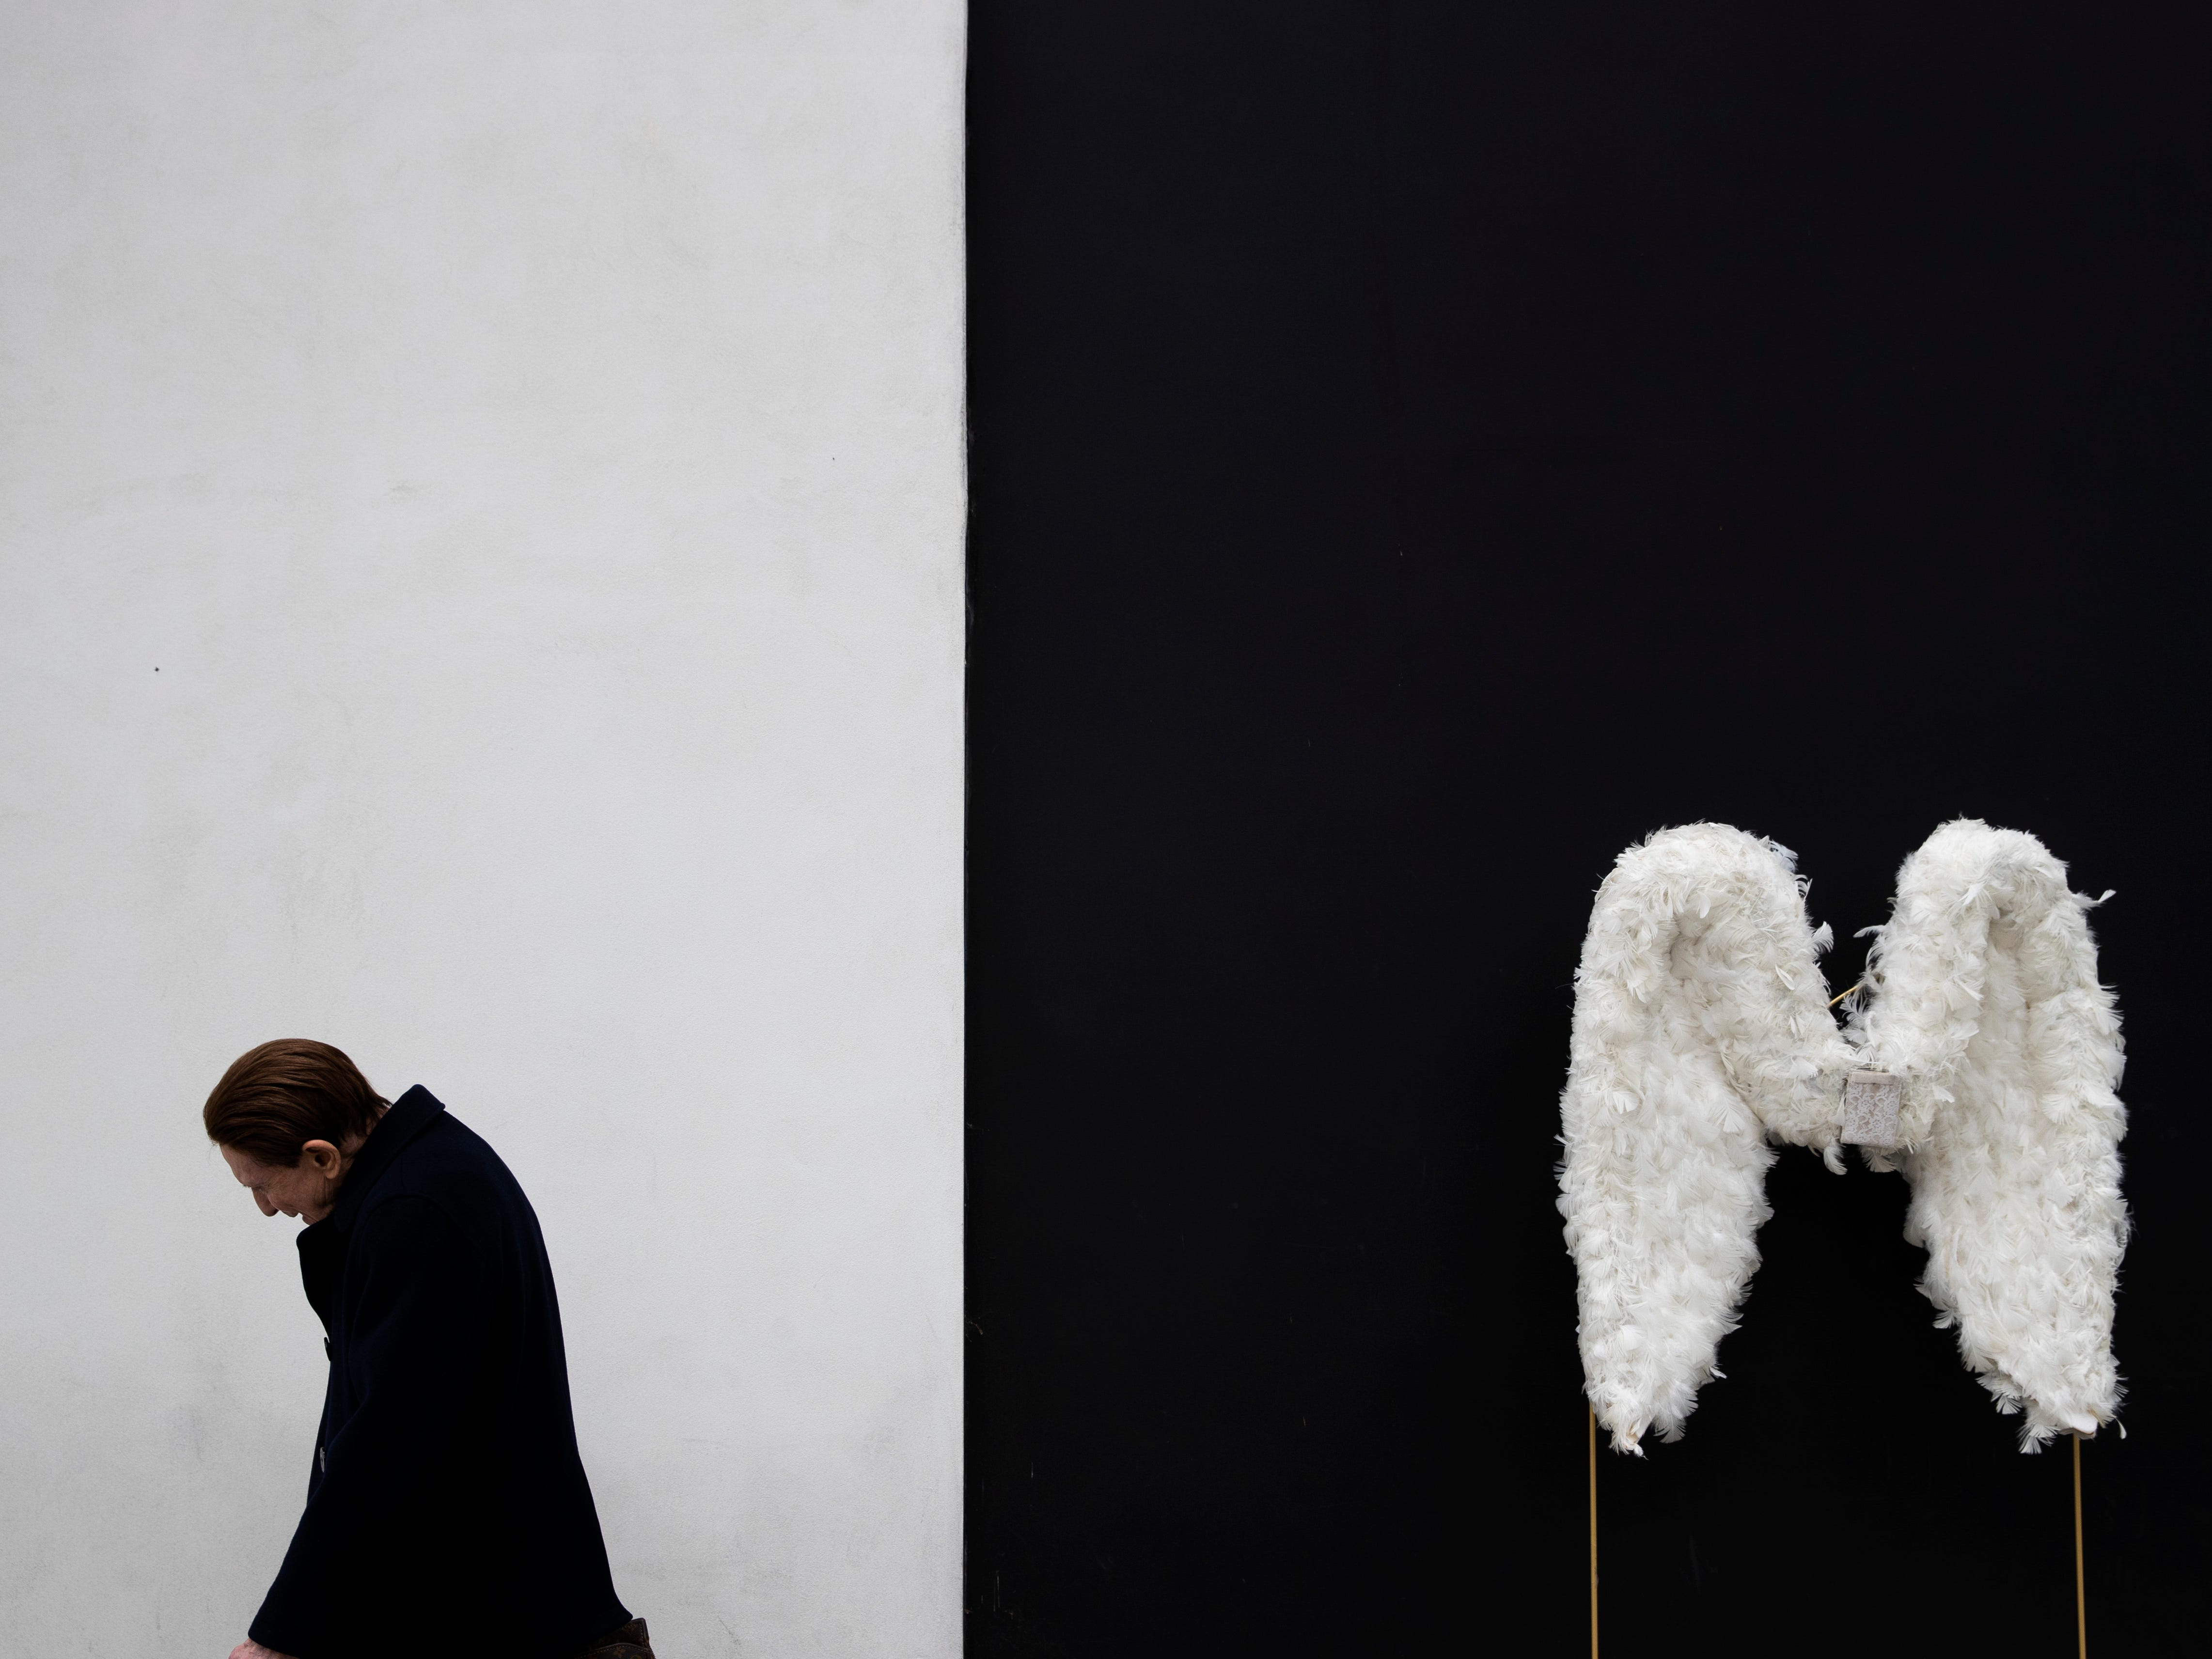 A man walks by a pair of angel wings as part of a store display in Beverly Hills, Calif., on Tuesday, May 7, 2019.